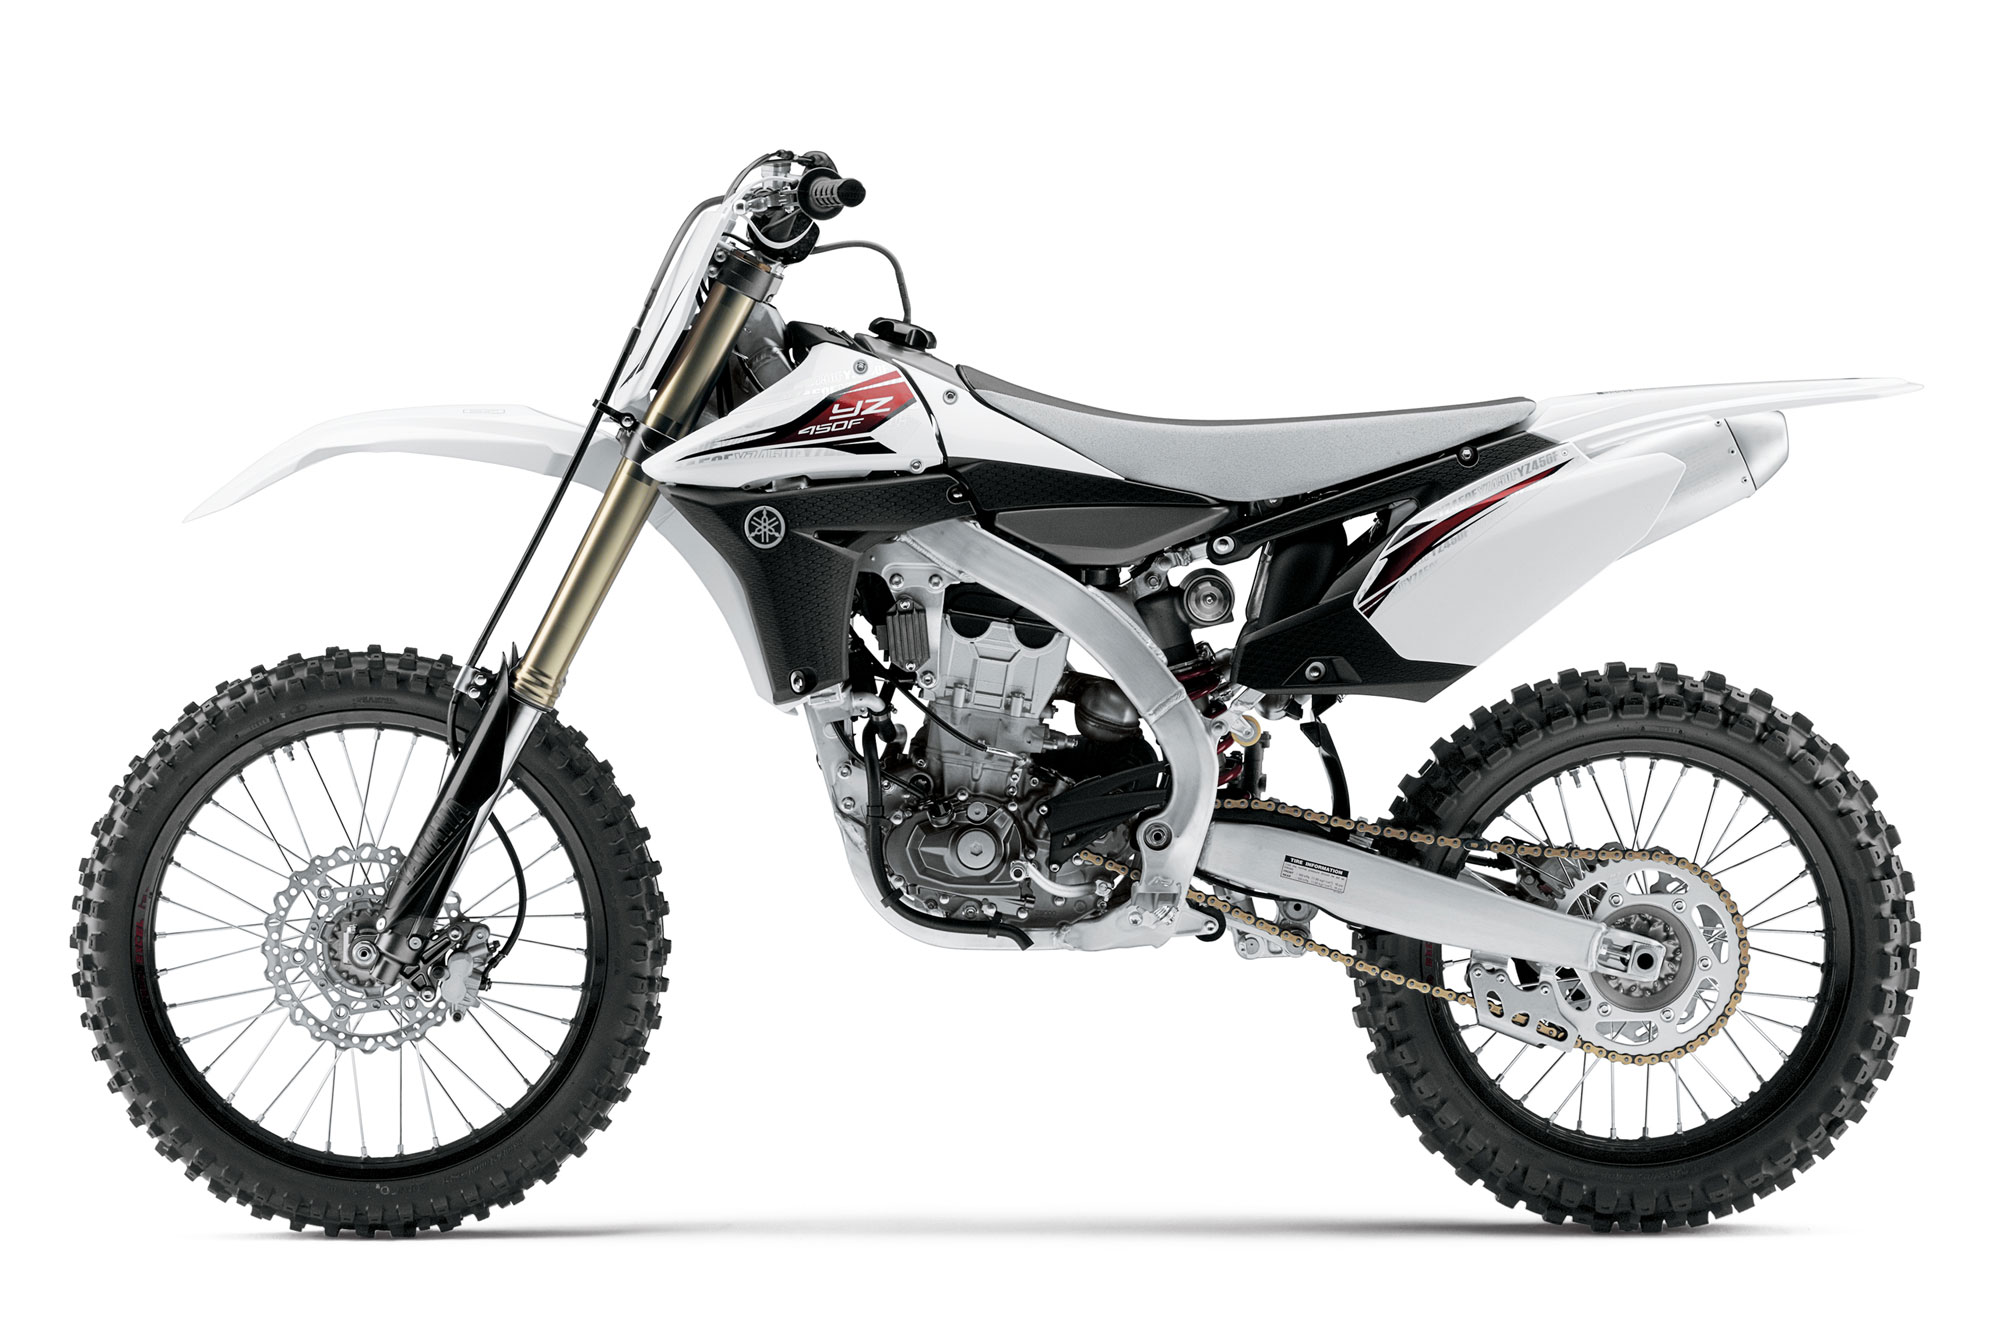 Yamaha Yz 450 F Pics Specs And Information